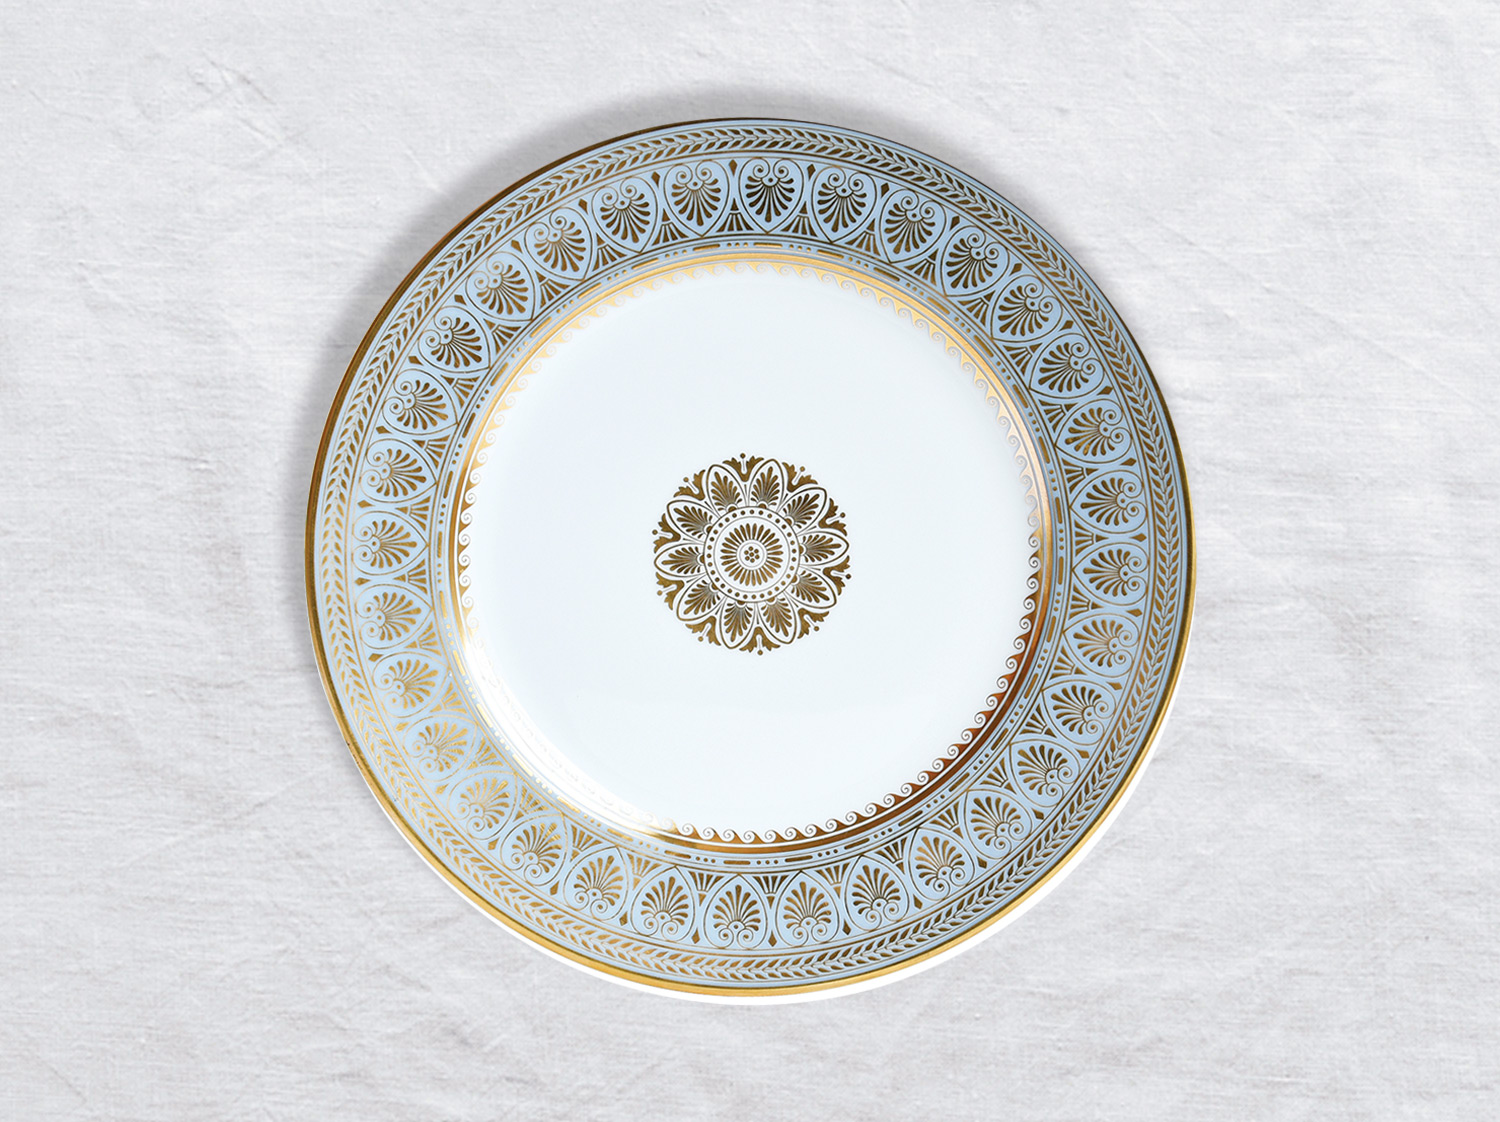 Assiette à dîner 26 cm en porcelaine de la collection Elysee Bernardaud